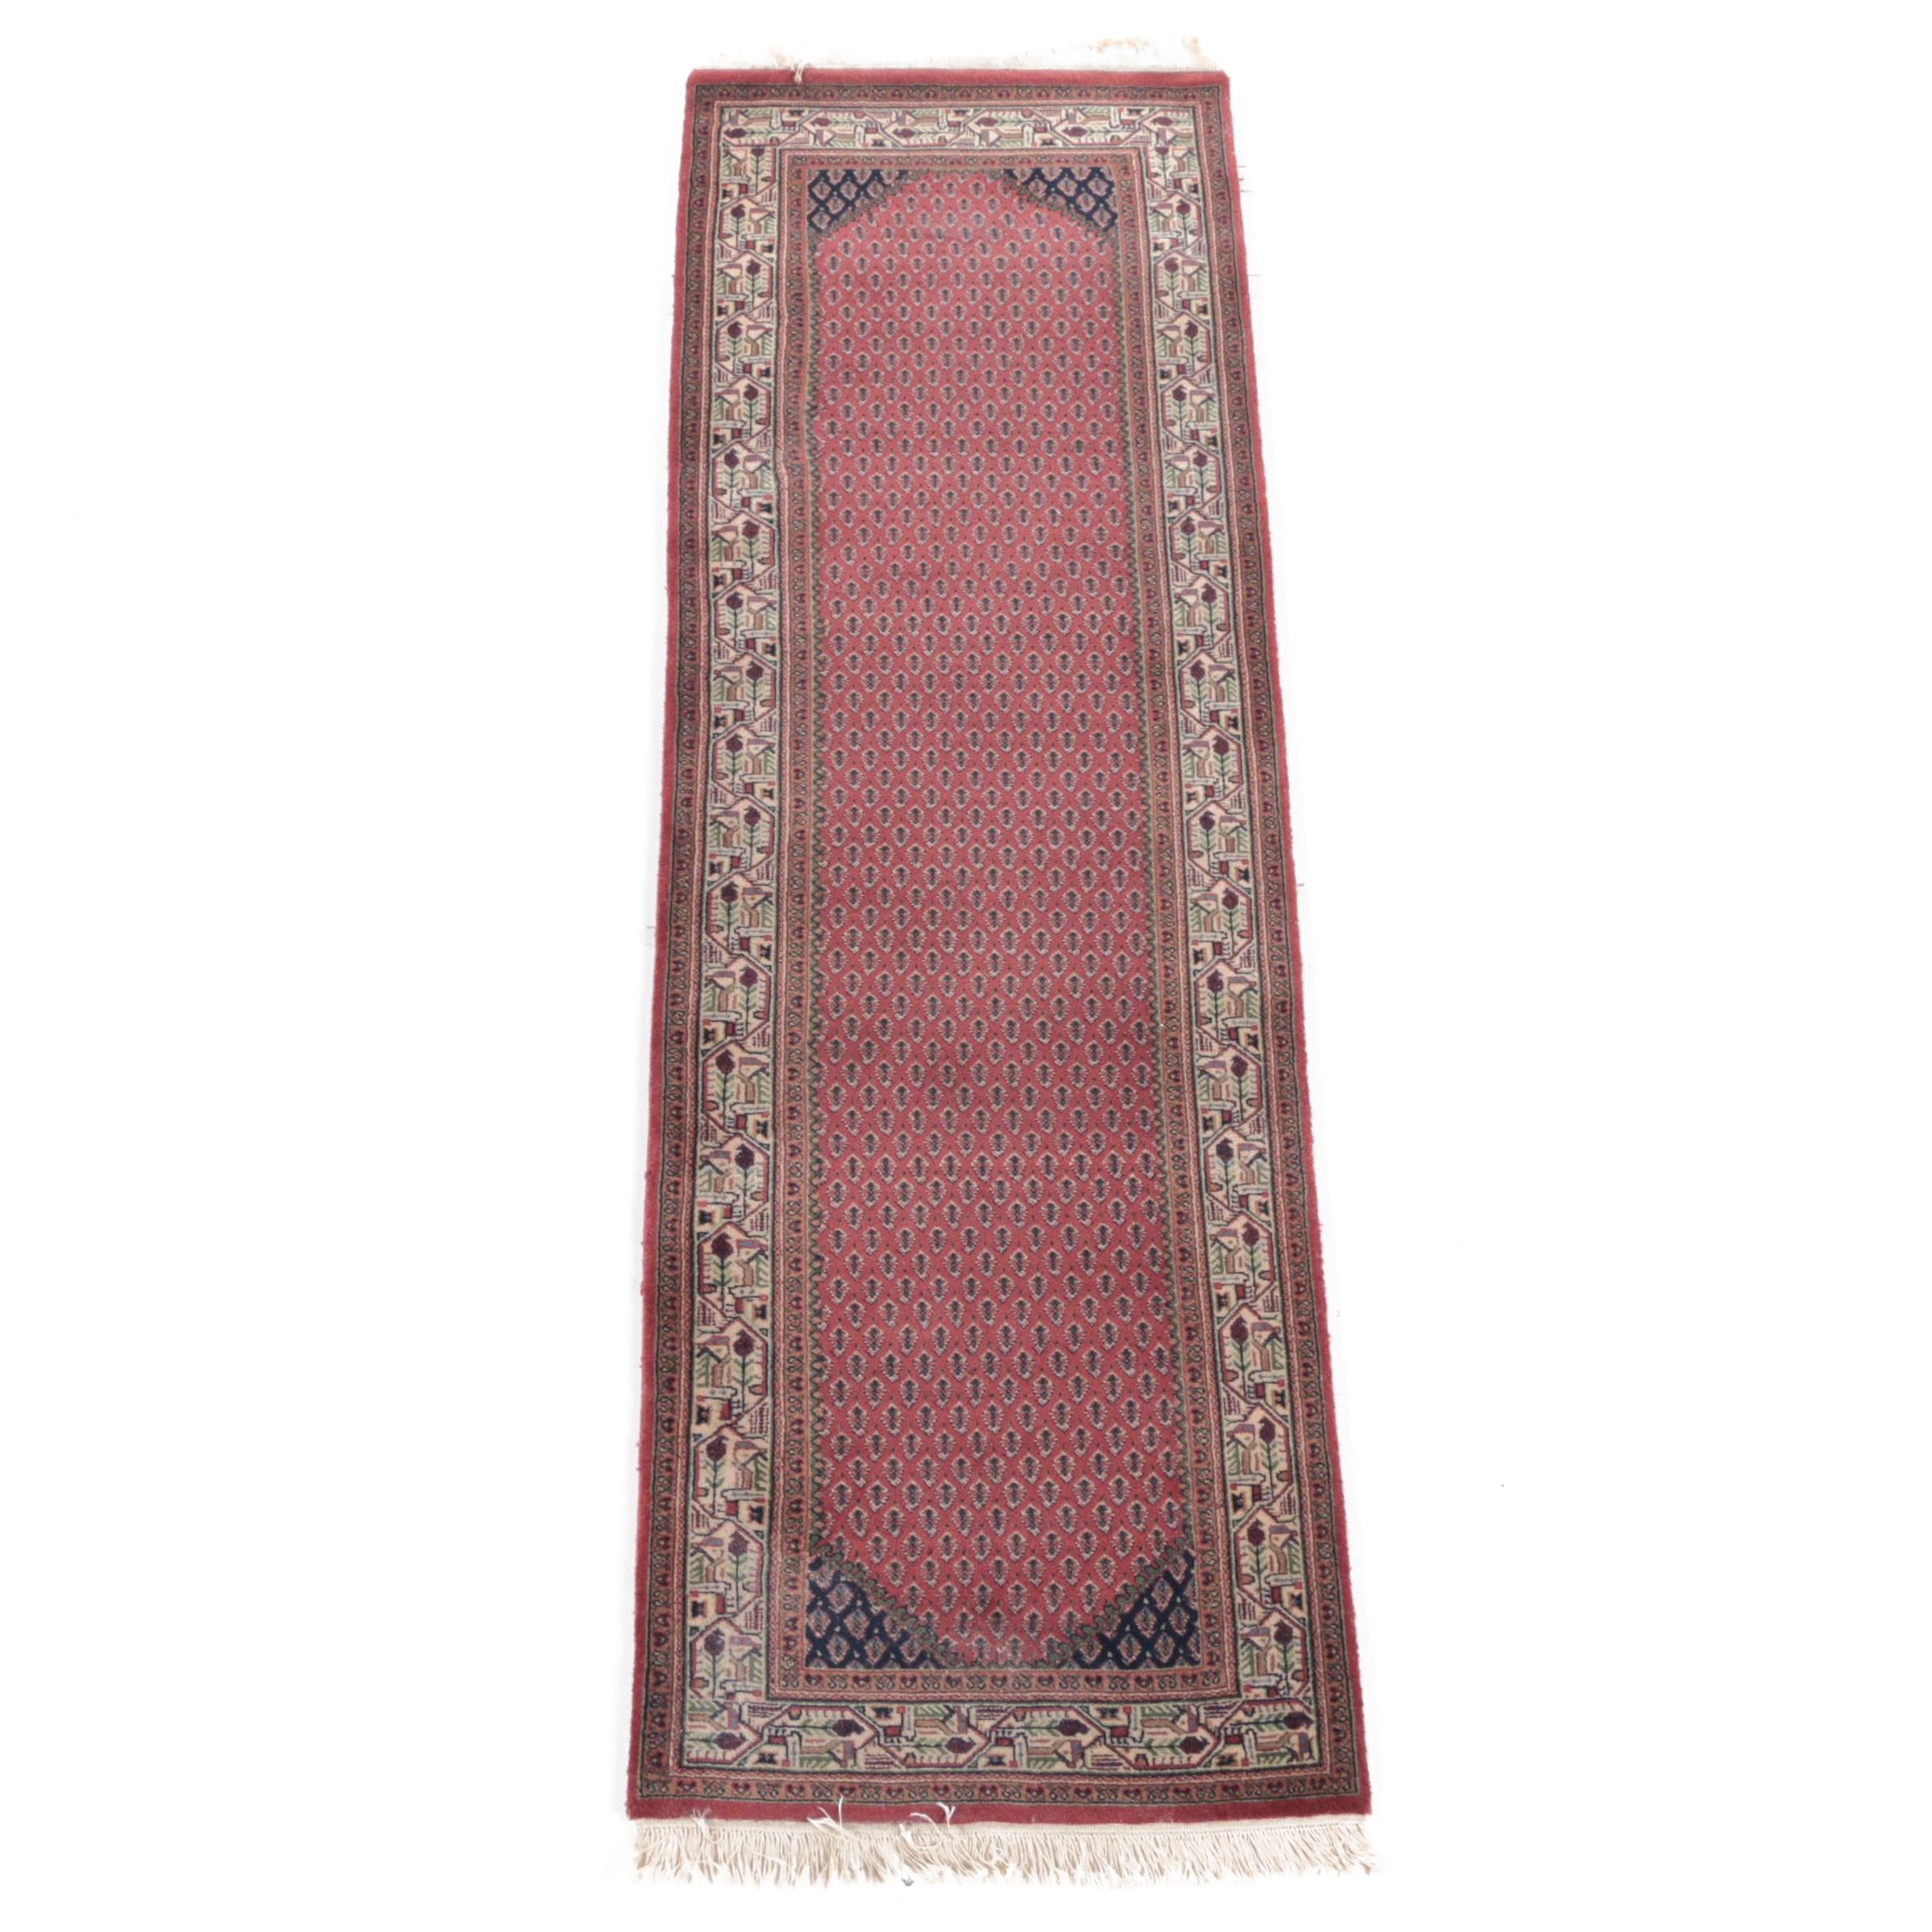 Power Loomed Pande Cameron Obeetee Carpet Runner